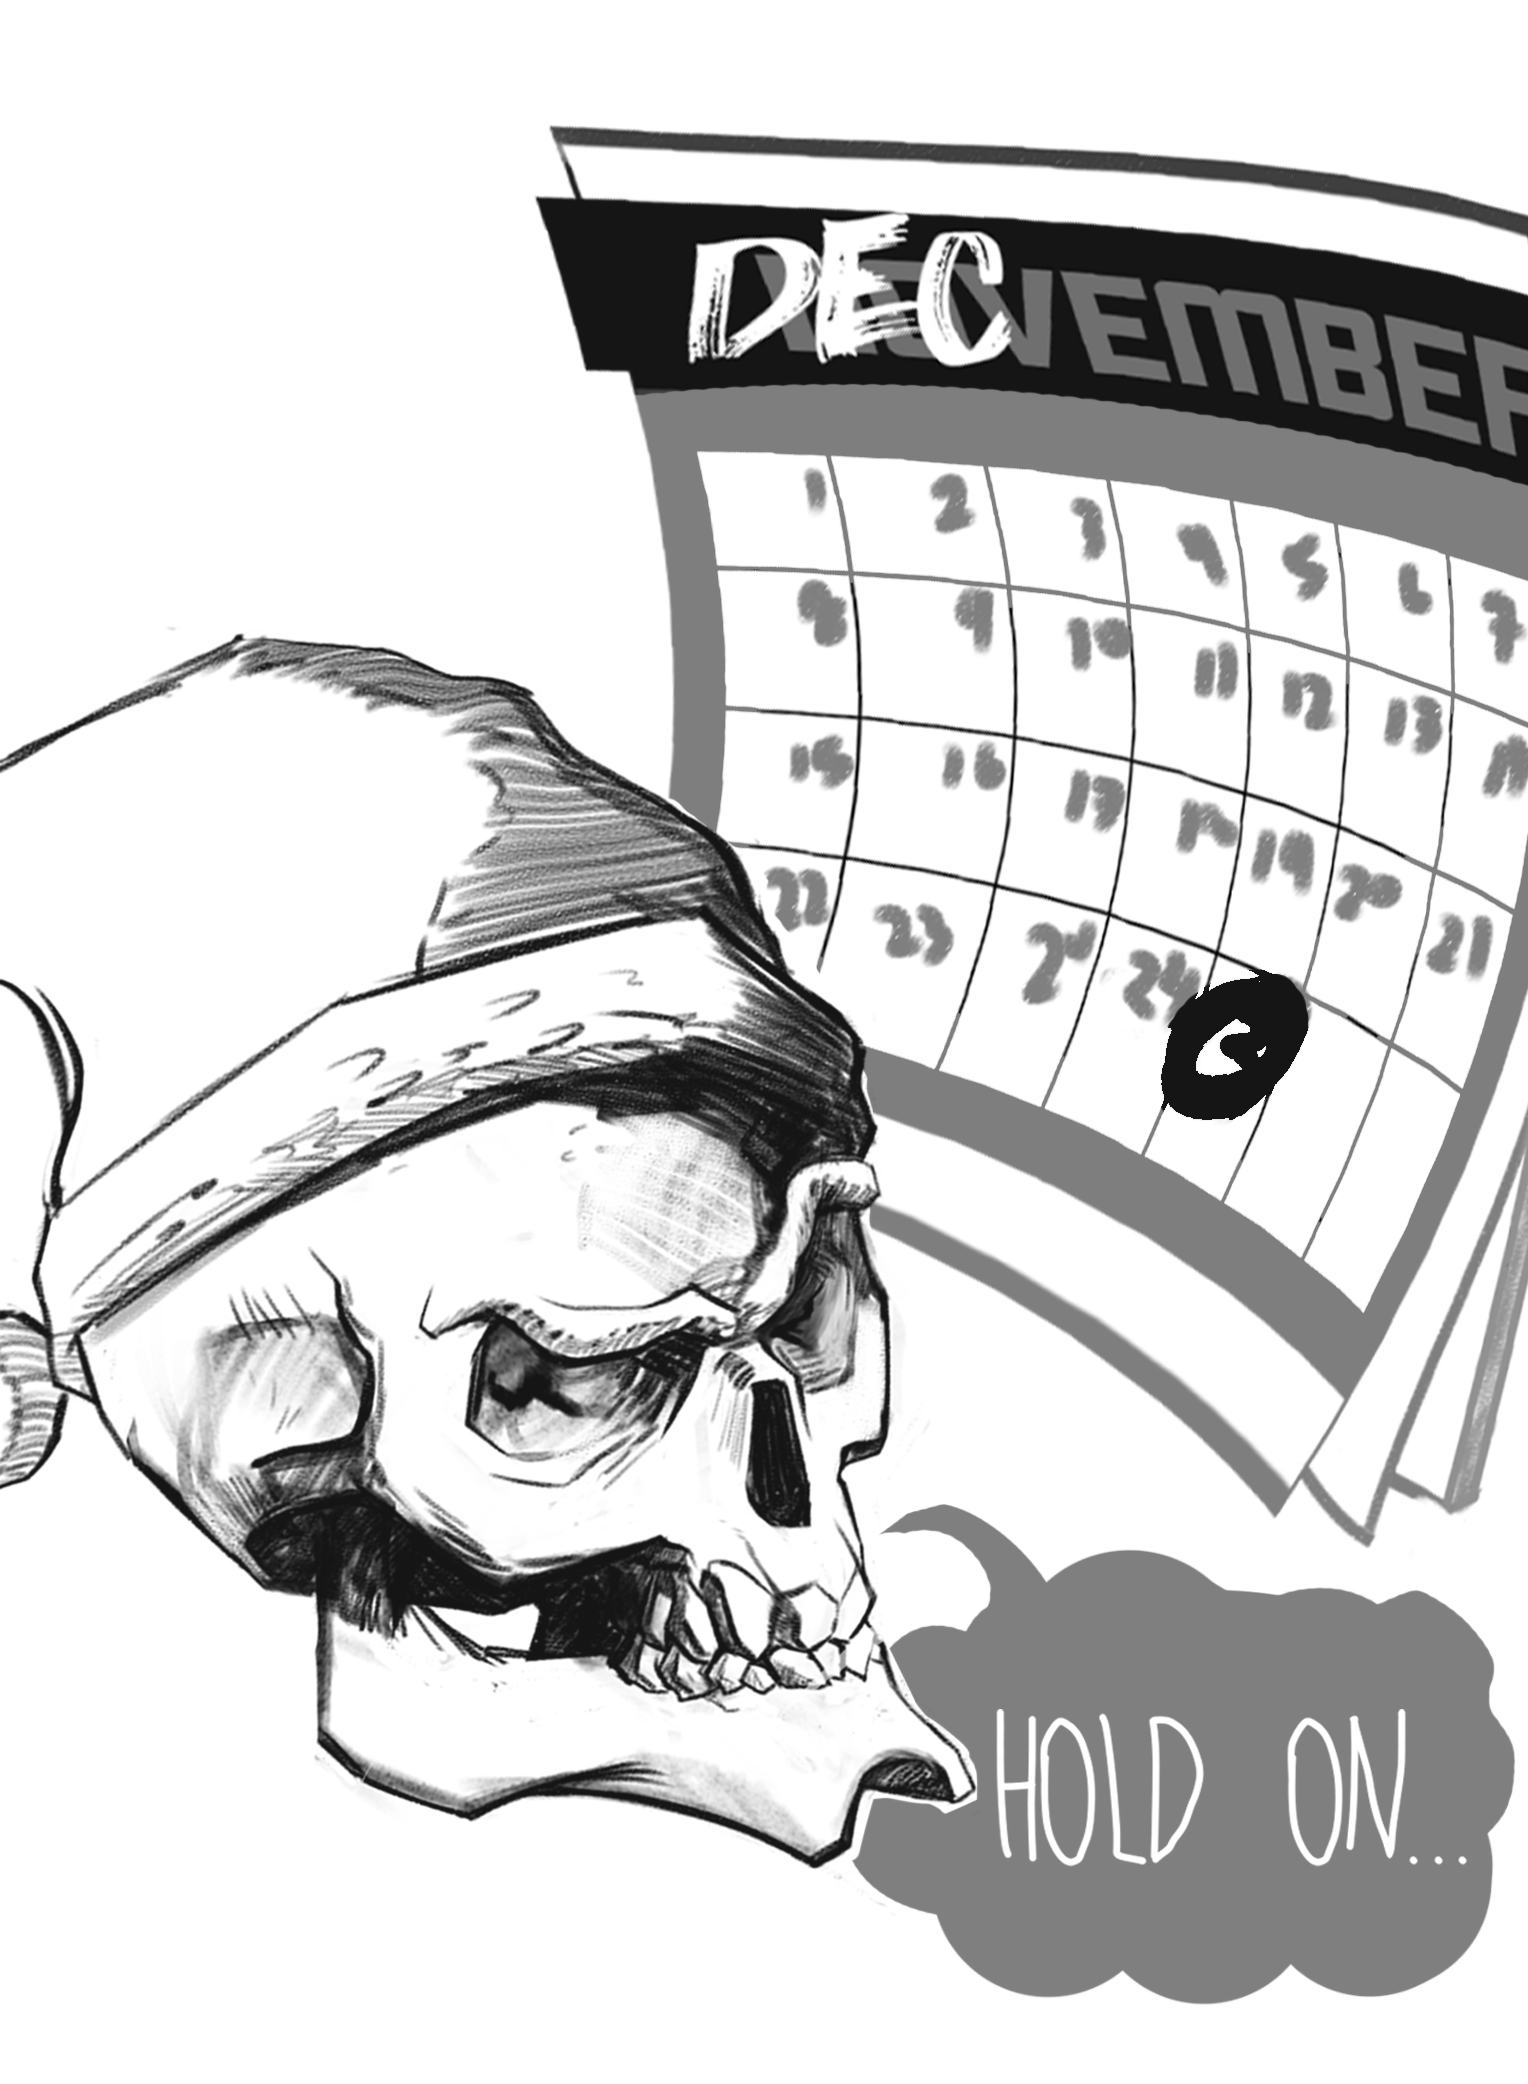 A skull with a Santa hat, looking at a calendar questionably as it have November scratched out for December.